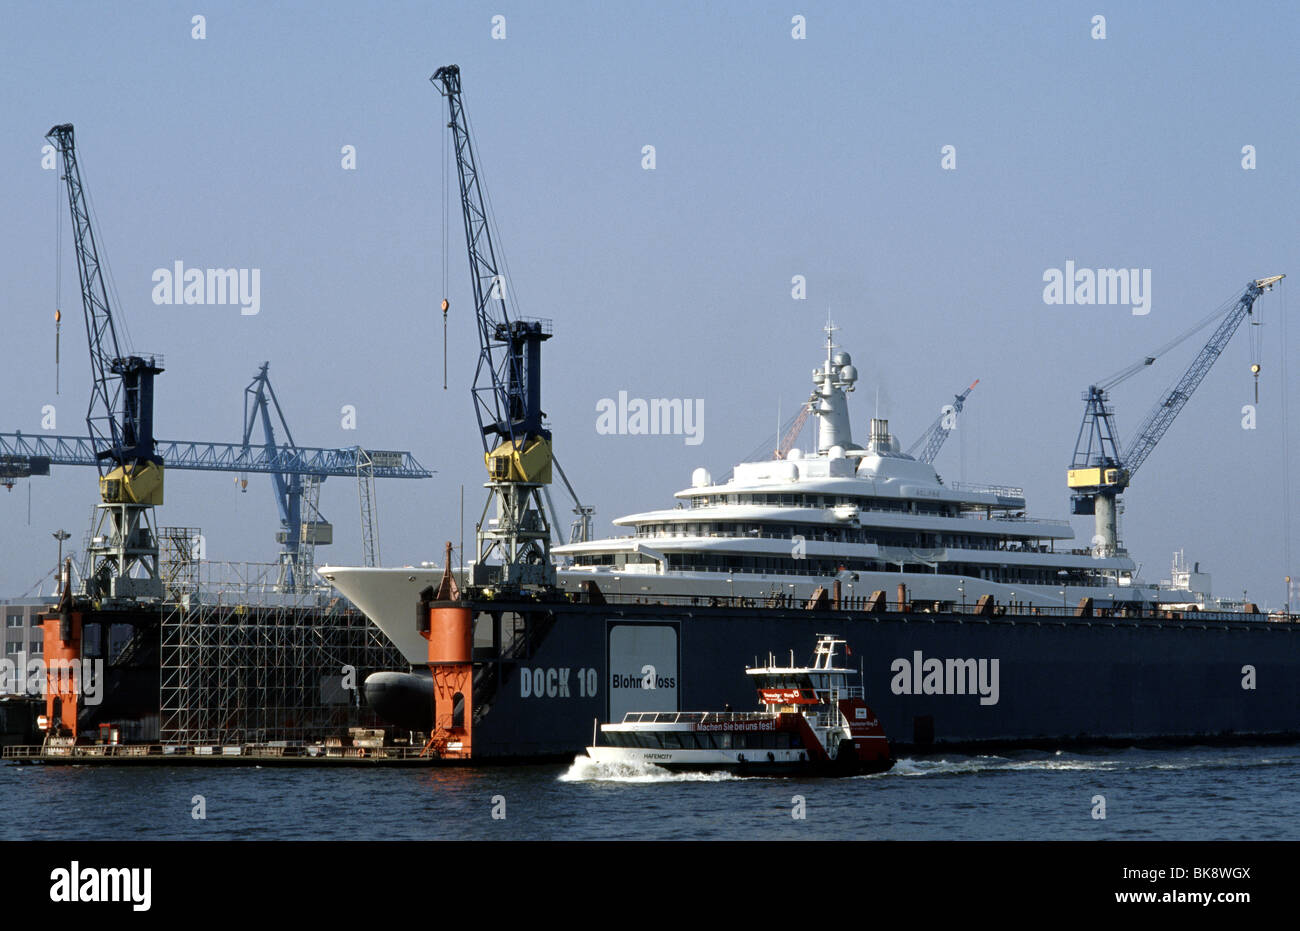 April 14, 2010 - Roman Abramovich's new yacht Eclipse at Blohm + Voss ship yard in the German port of Hamburg. - Stock Image